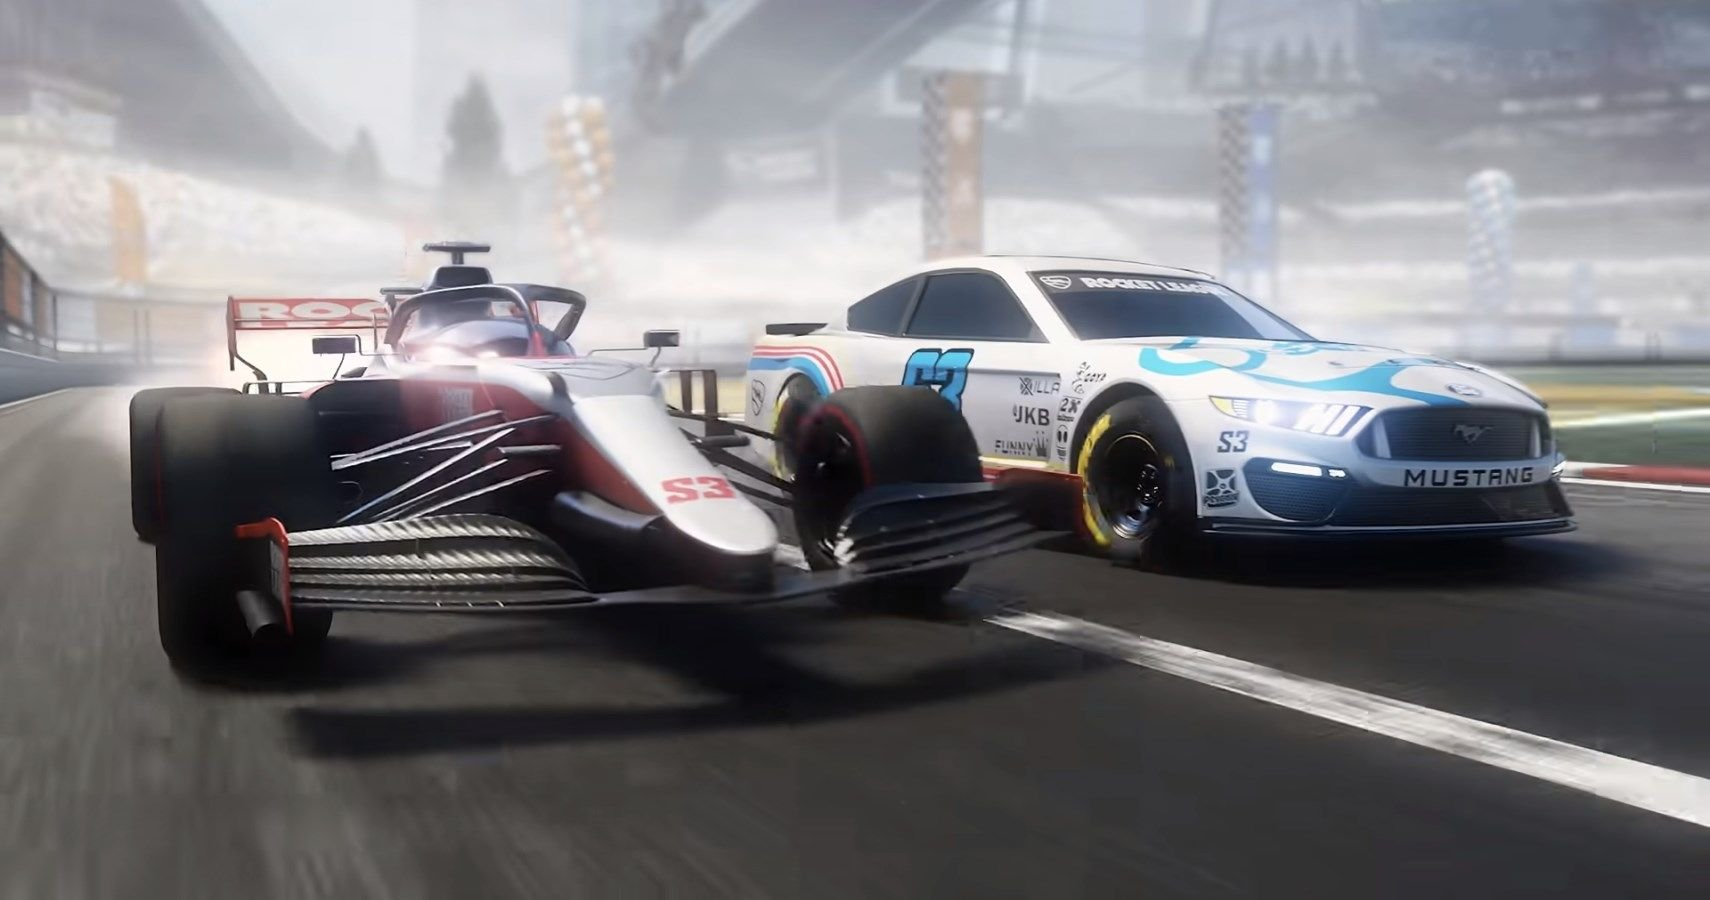 Watch The Trailer: Rocket League Adding NASCAR And Formula 1 Content For Season 3